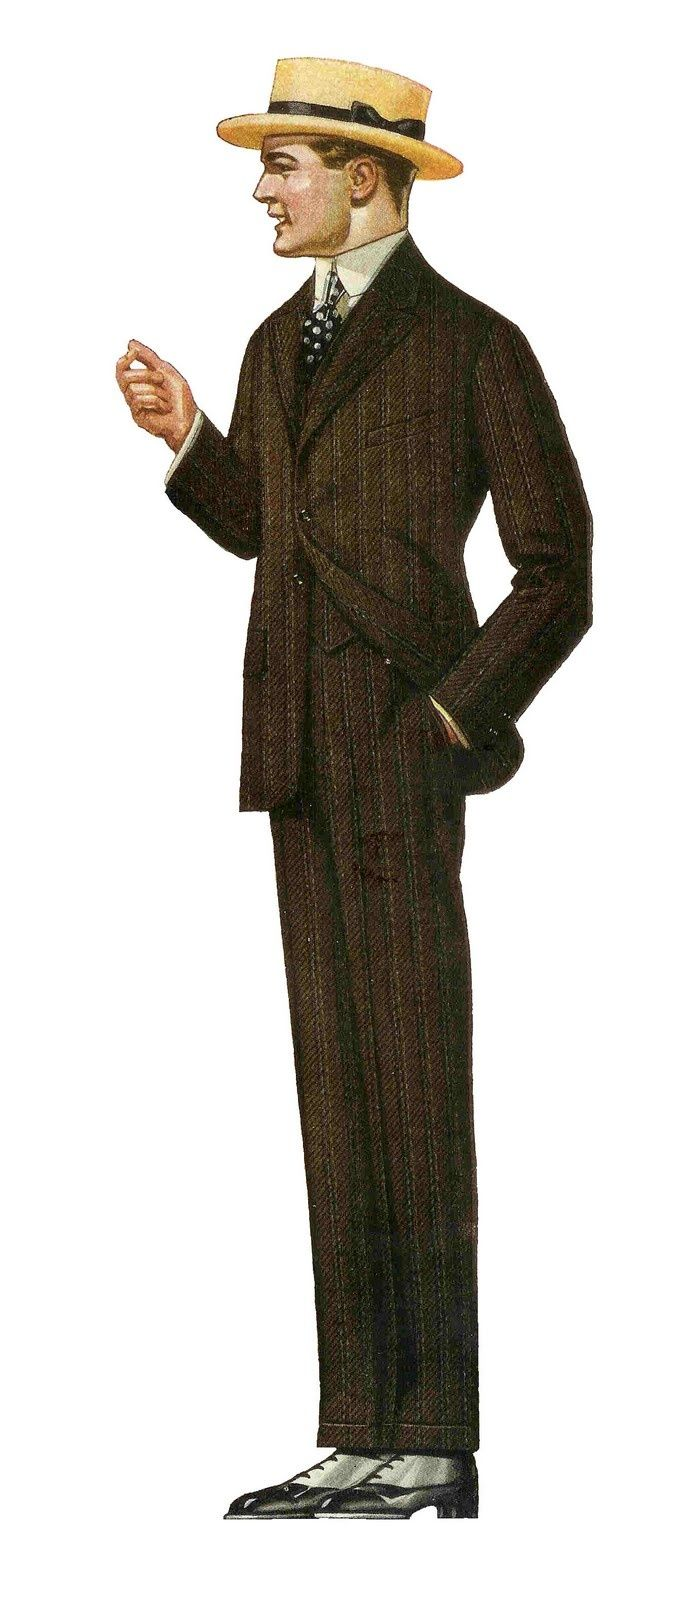 1910s Men 39 S Edwardian Fashion And Clothing Guide Suit Fashion Fashion Vintage And Fashion